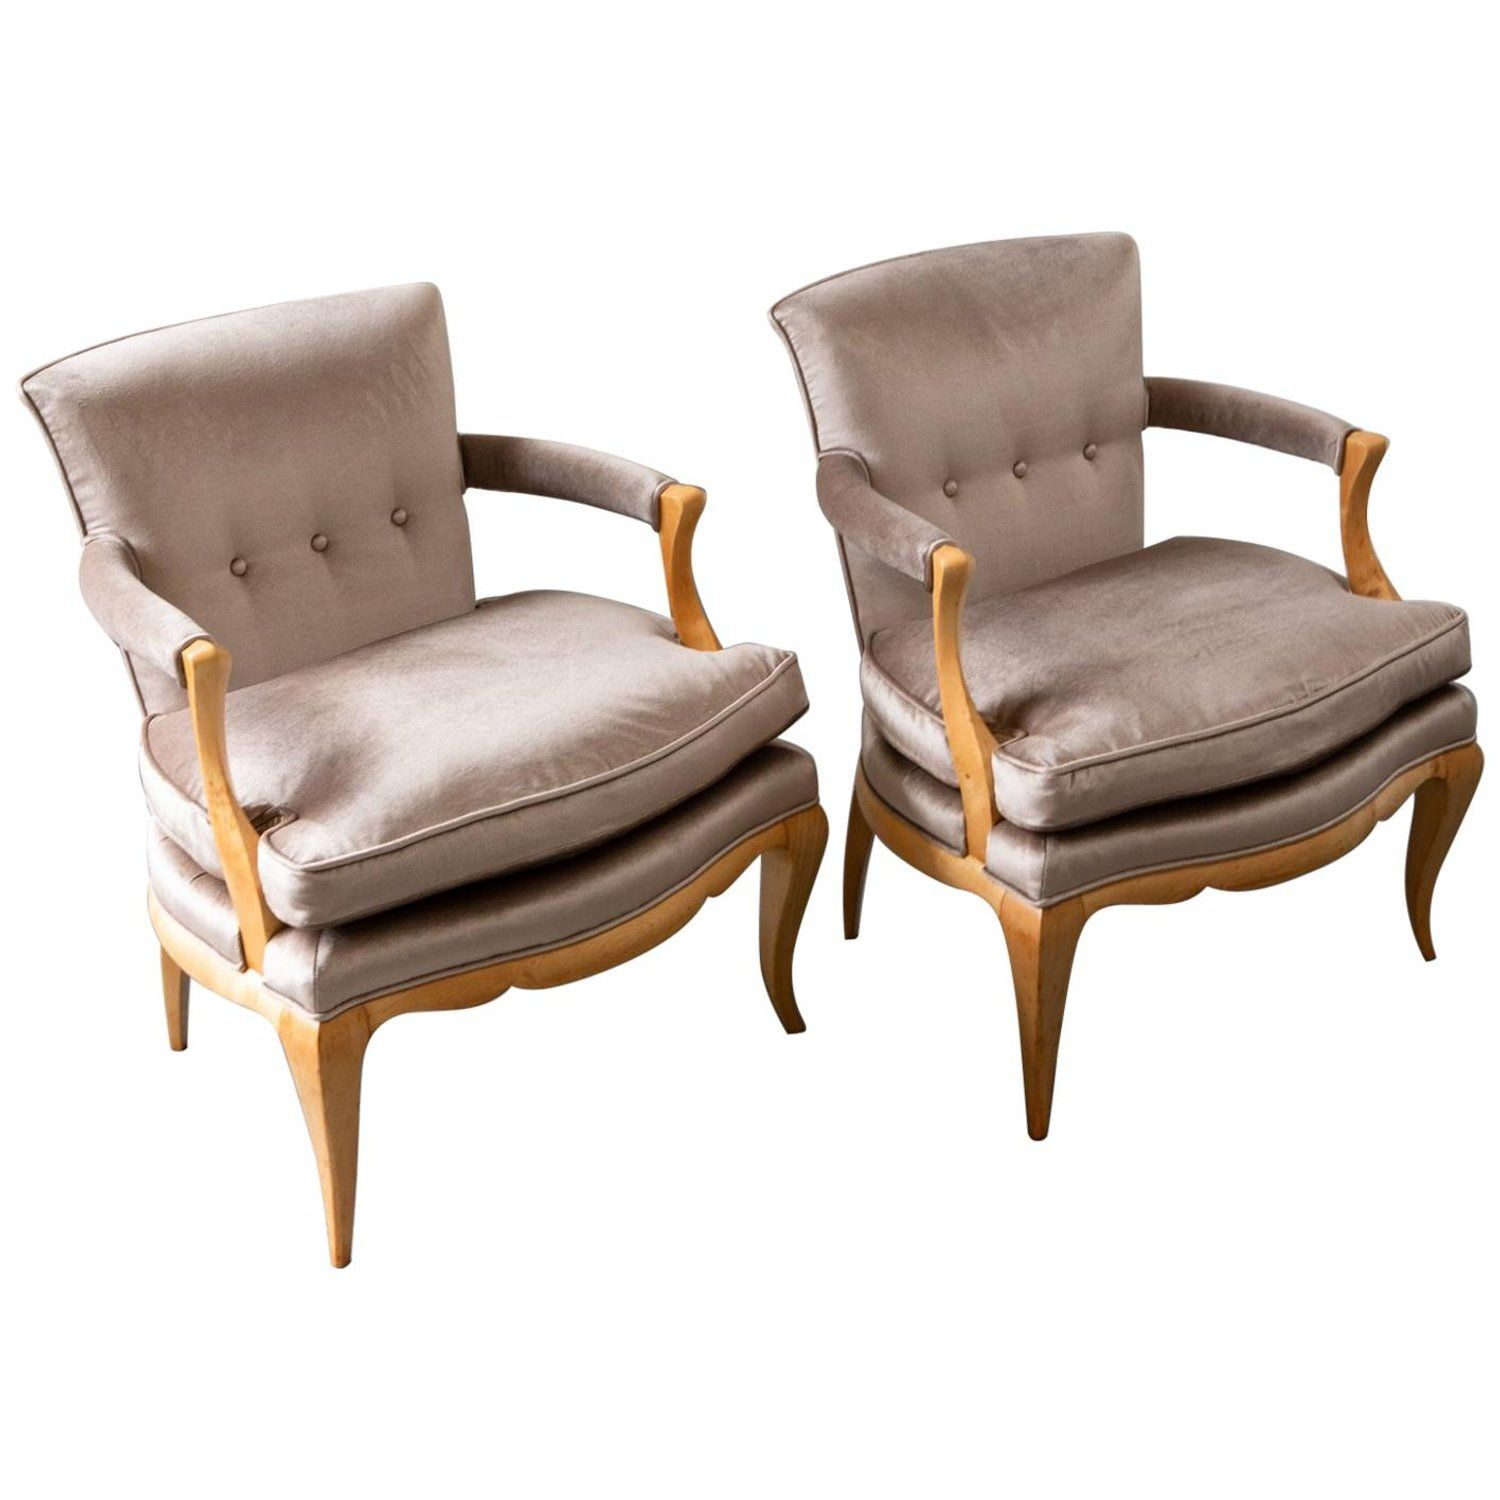 Pair of French Deco Armchairs | Deco chairs, Armchairs for ...